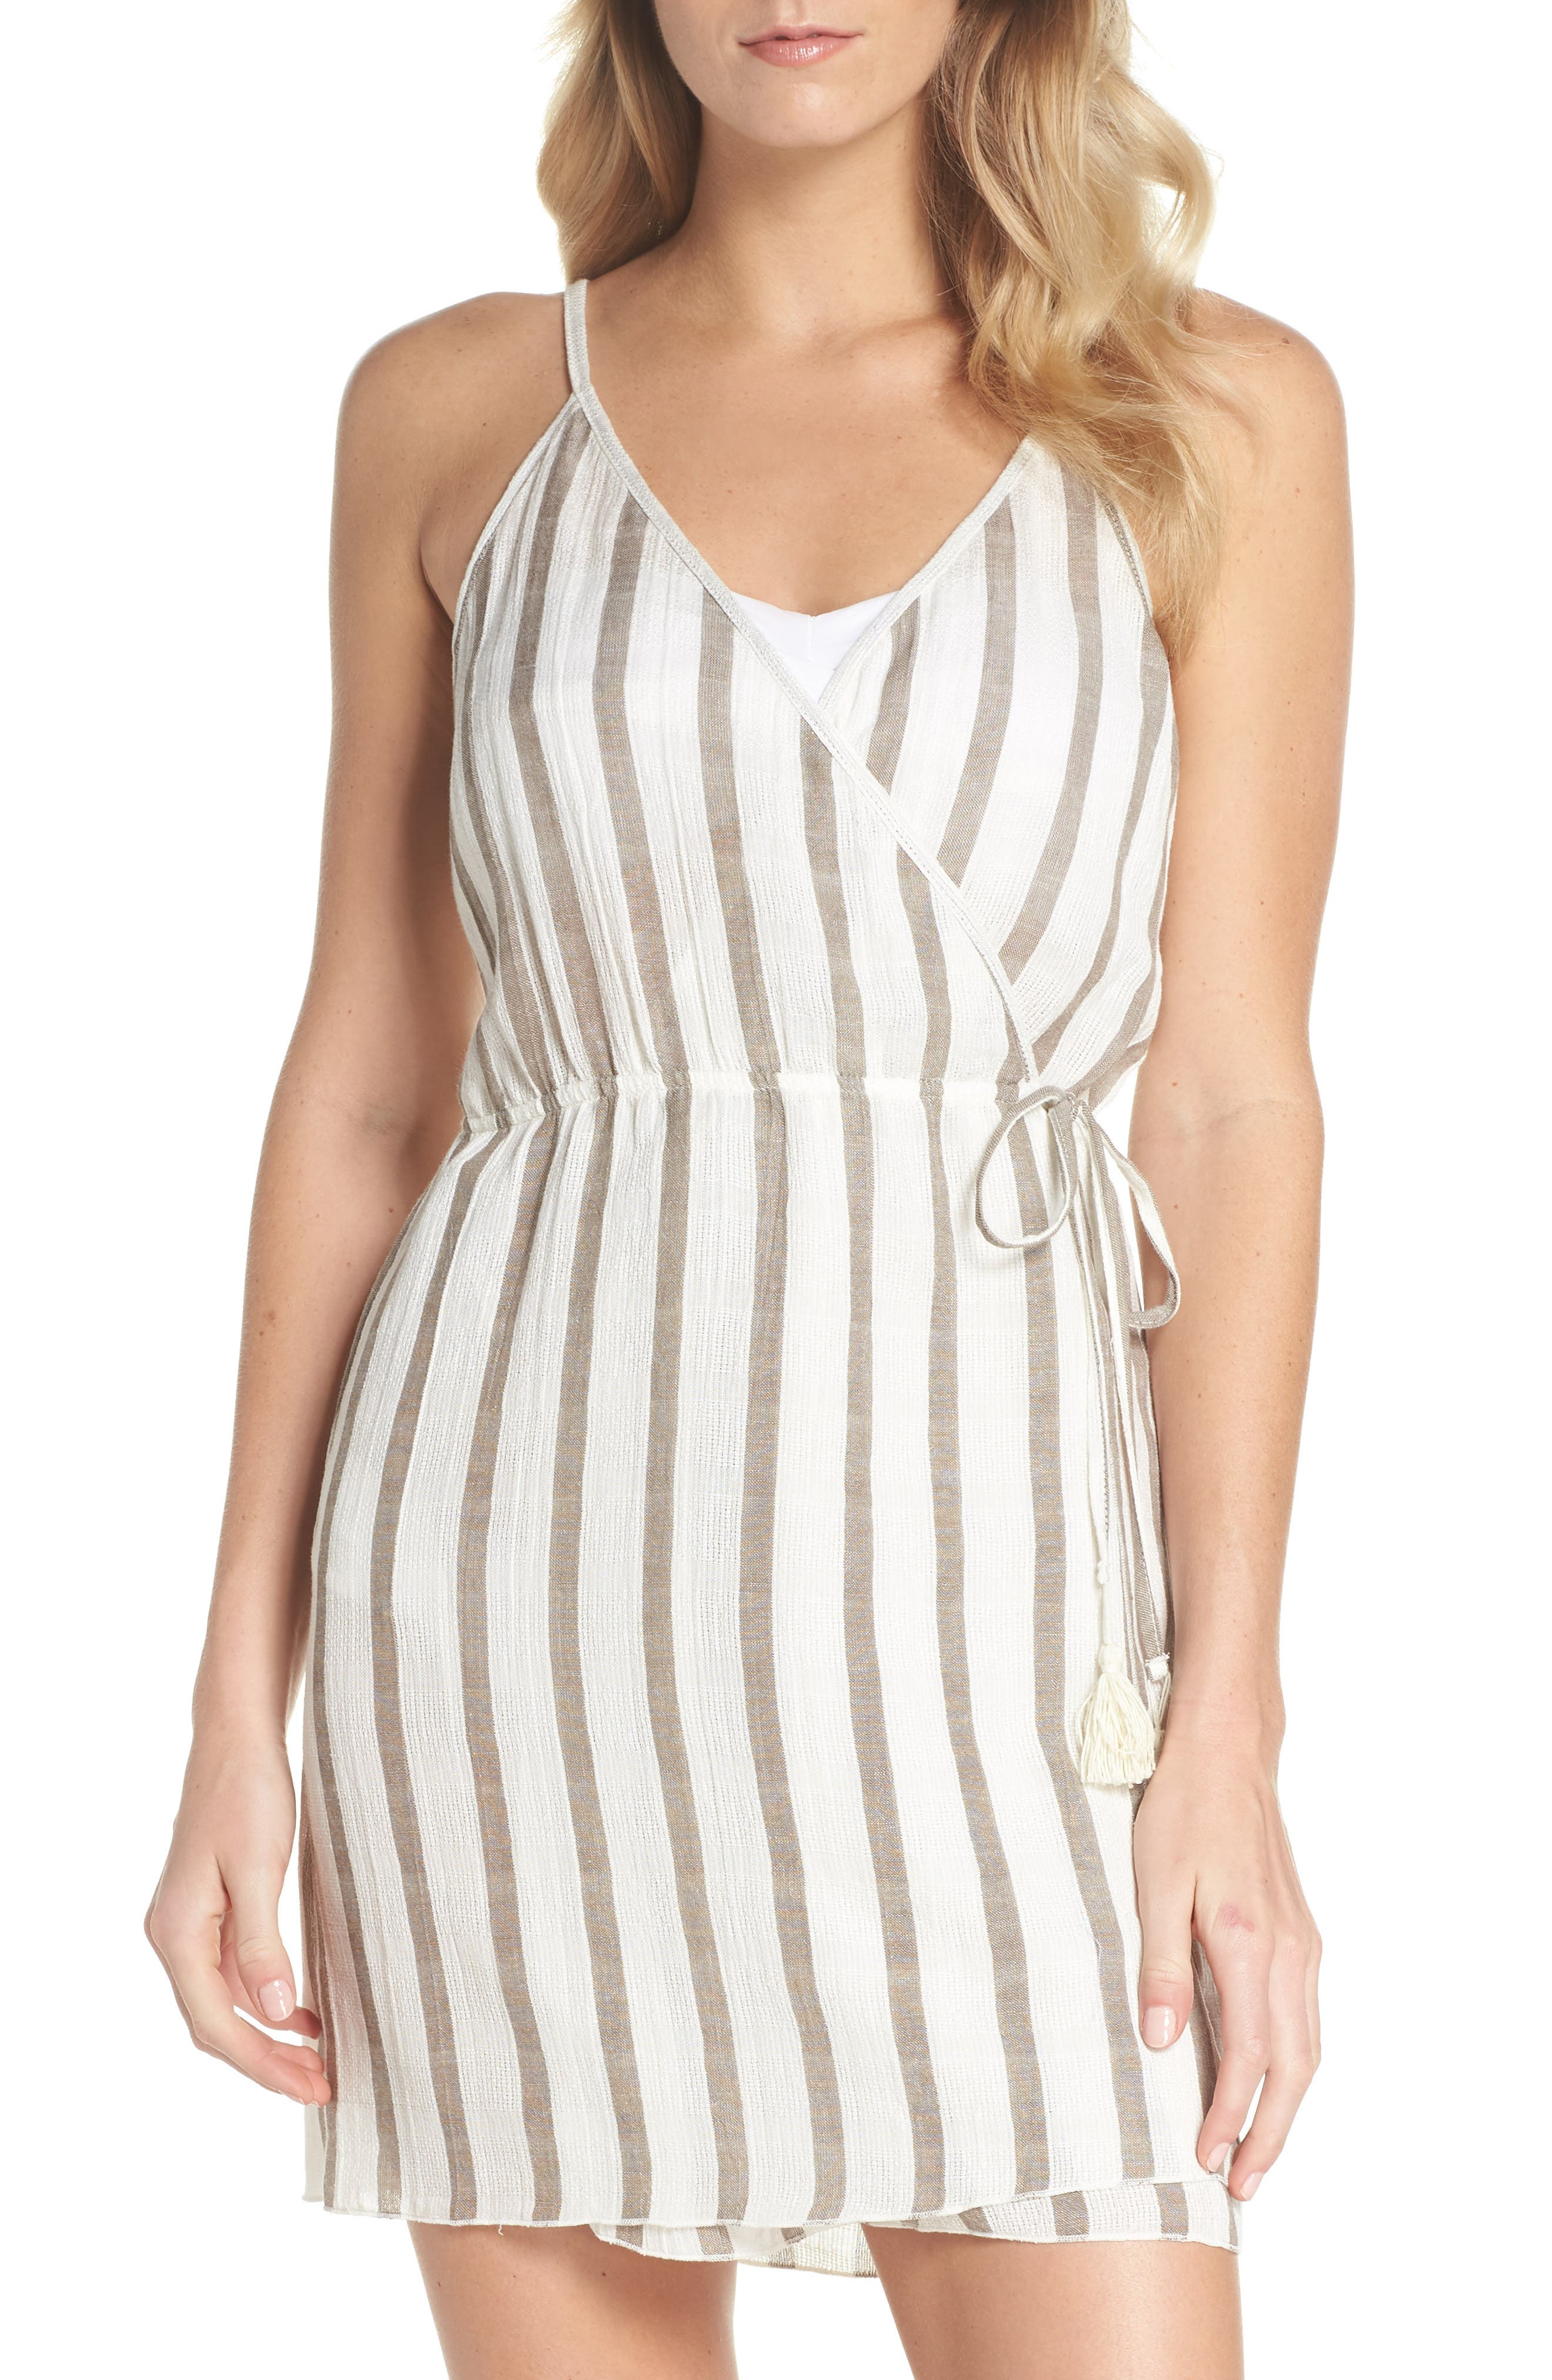 Becca Serengeti Cover-Up Wrap Dress, White